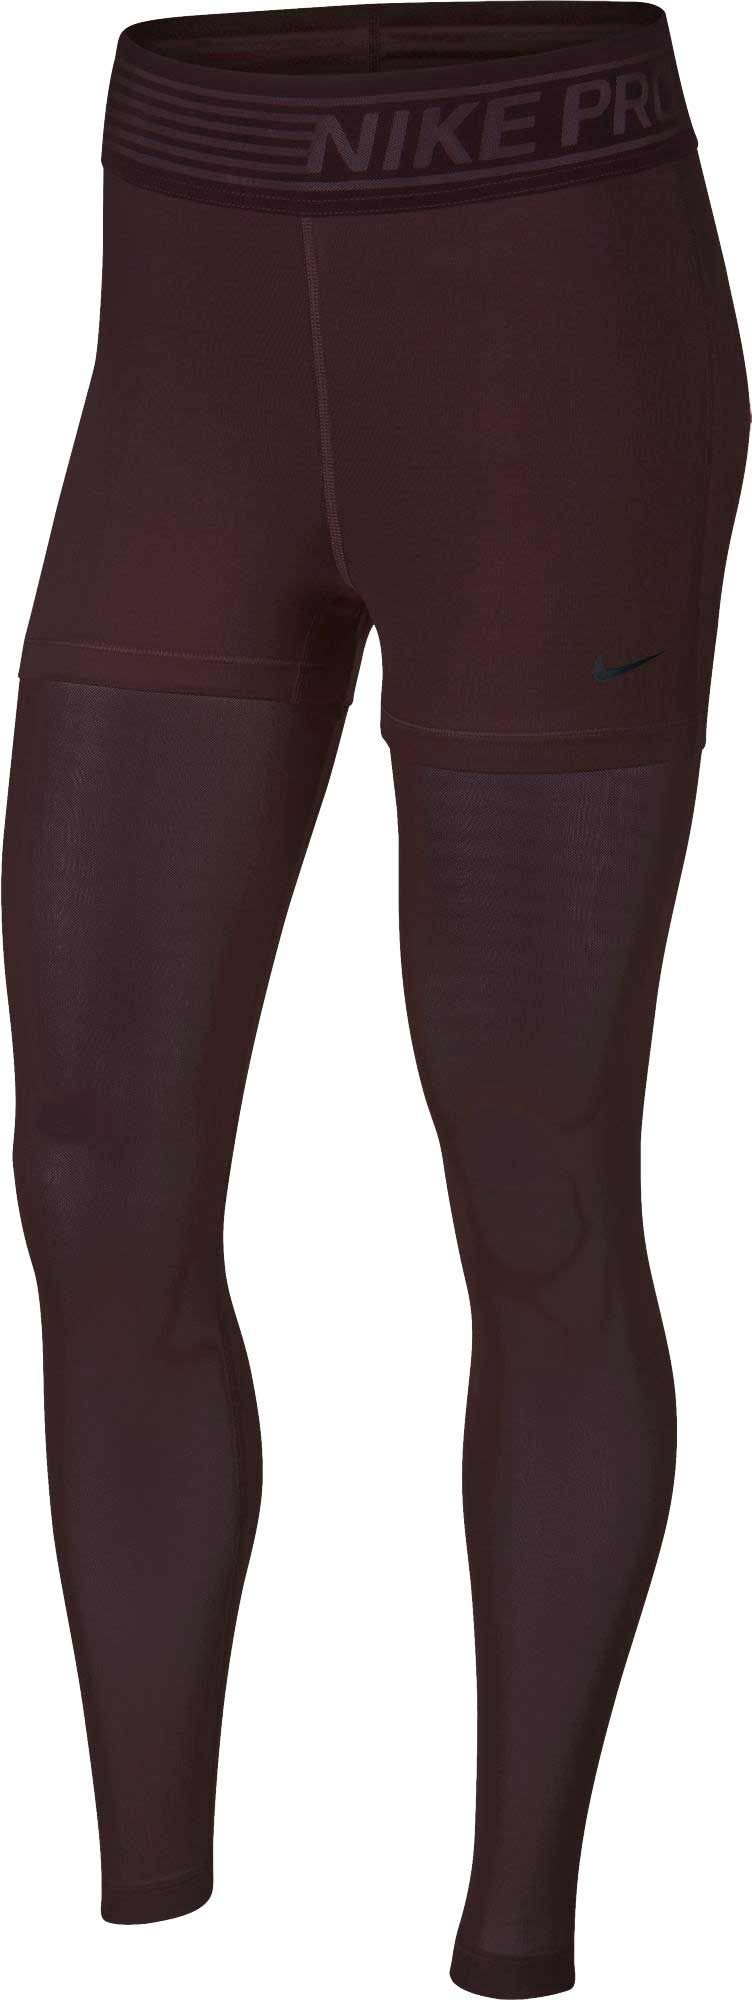 Nike Pro Deluxe Women's Thigh to Ankle Mesh Training Tights(Burgundy Crush/Small)